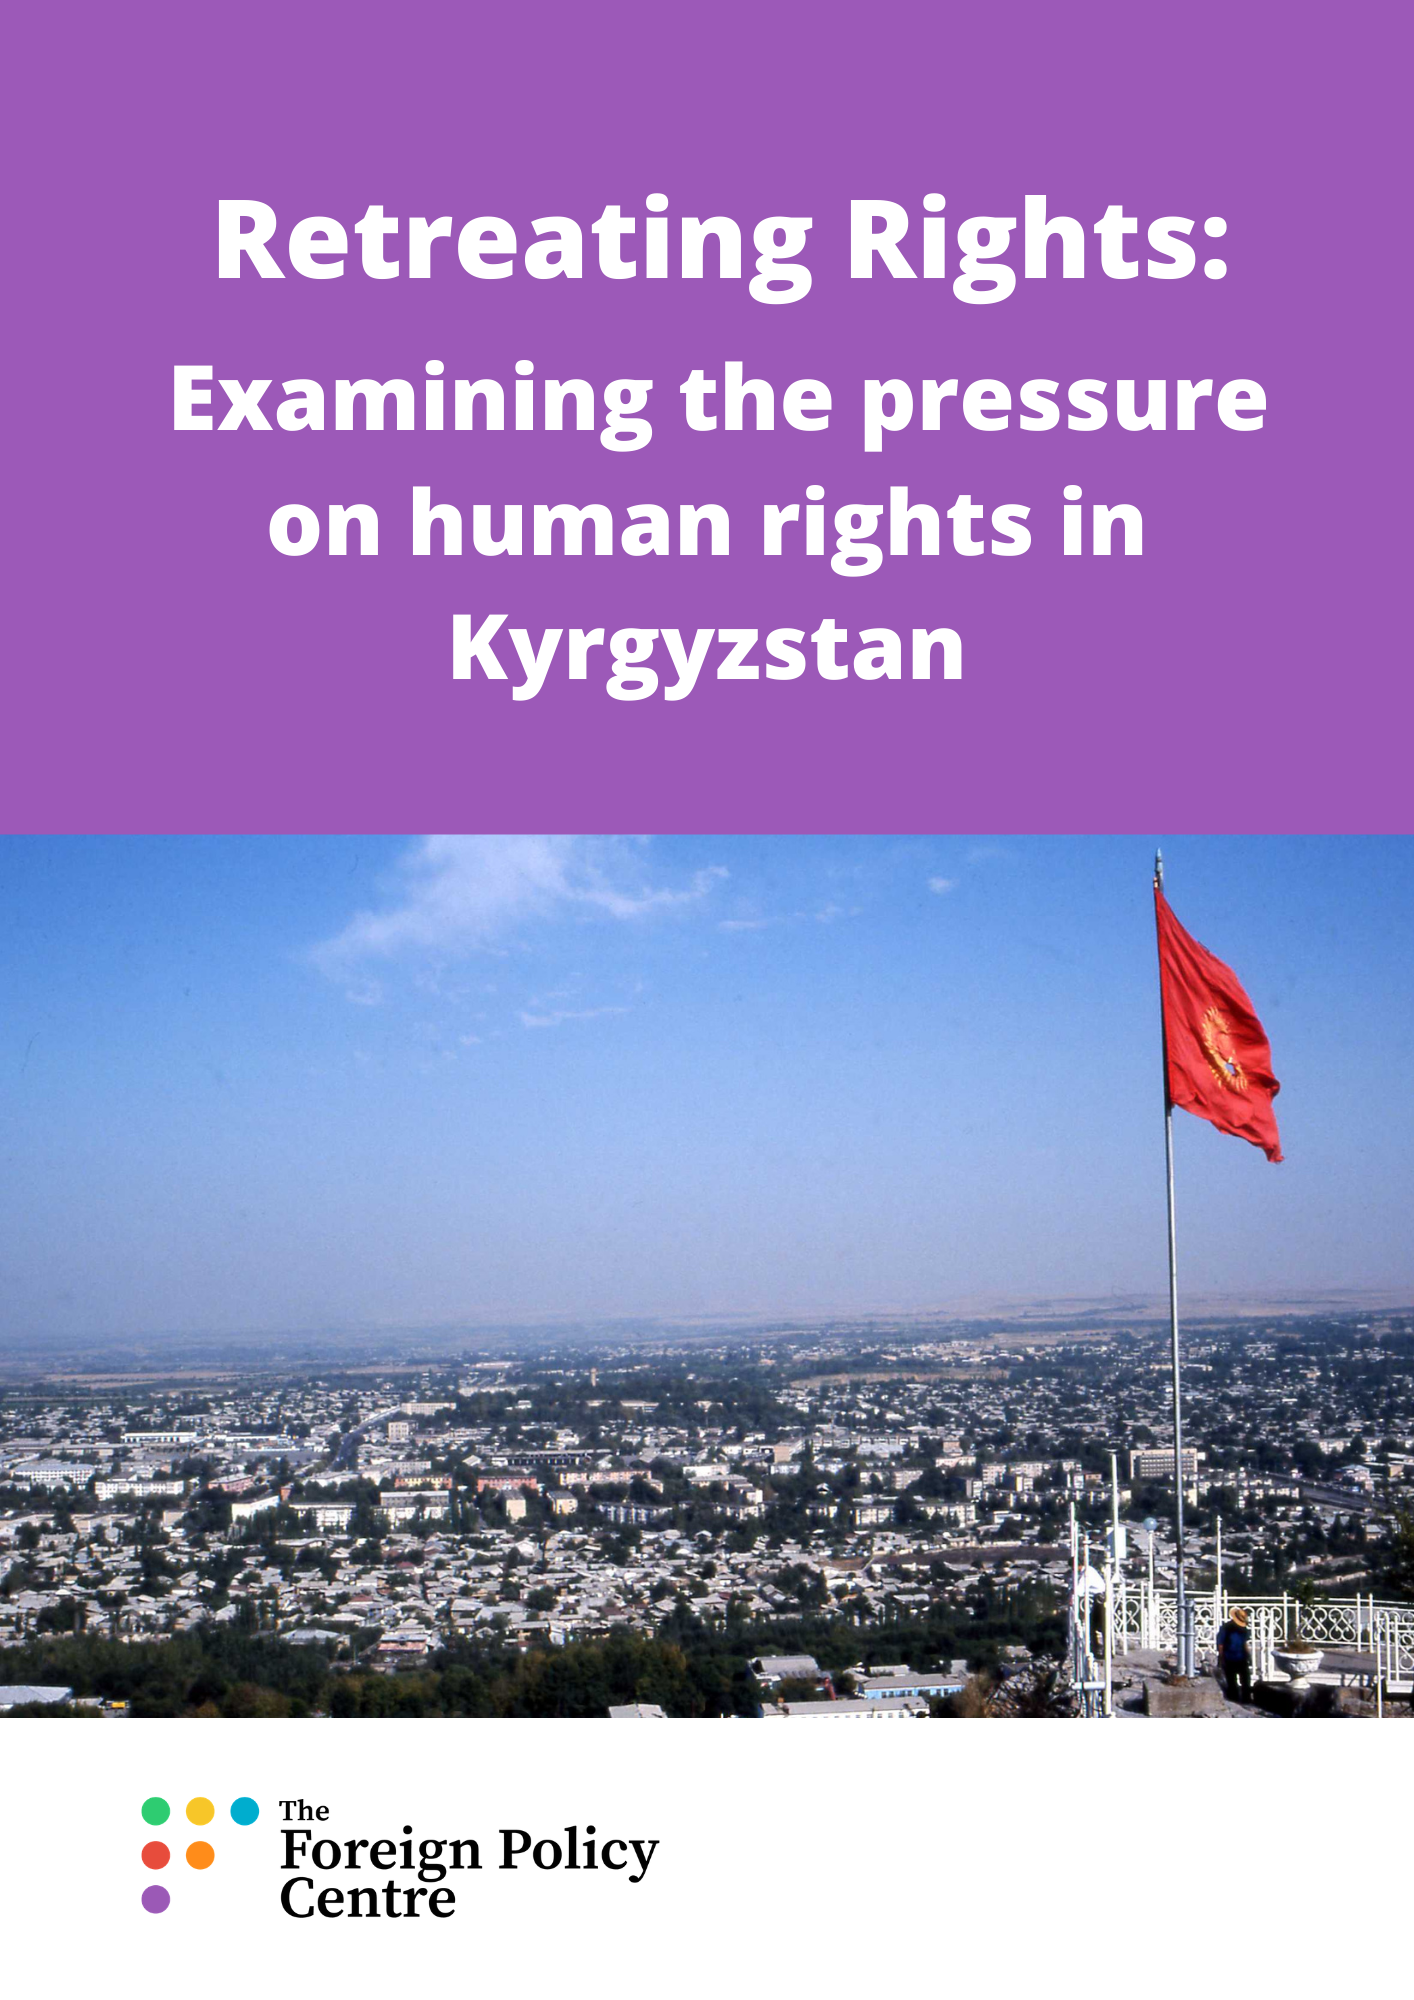 Retreating Rights: Examining the pressure on human rights in Kyrgyzstan